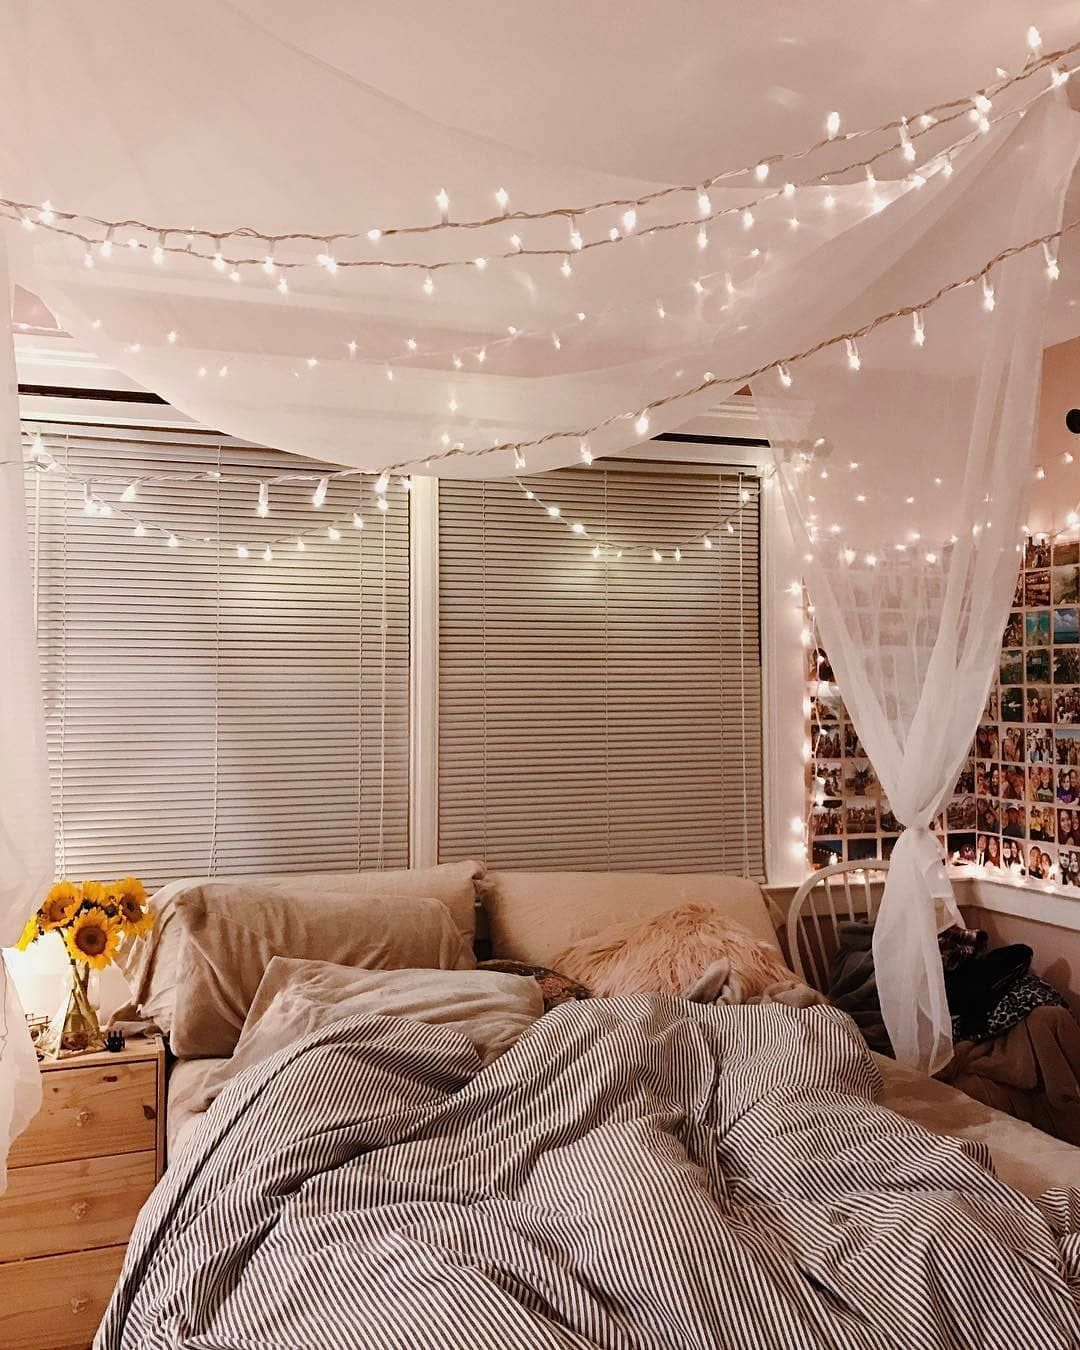 Howwelive On Instagram A Dream Of Fairylights In The Bedroom Of